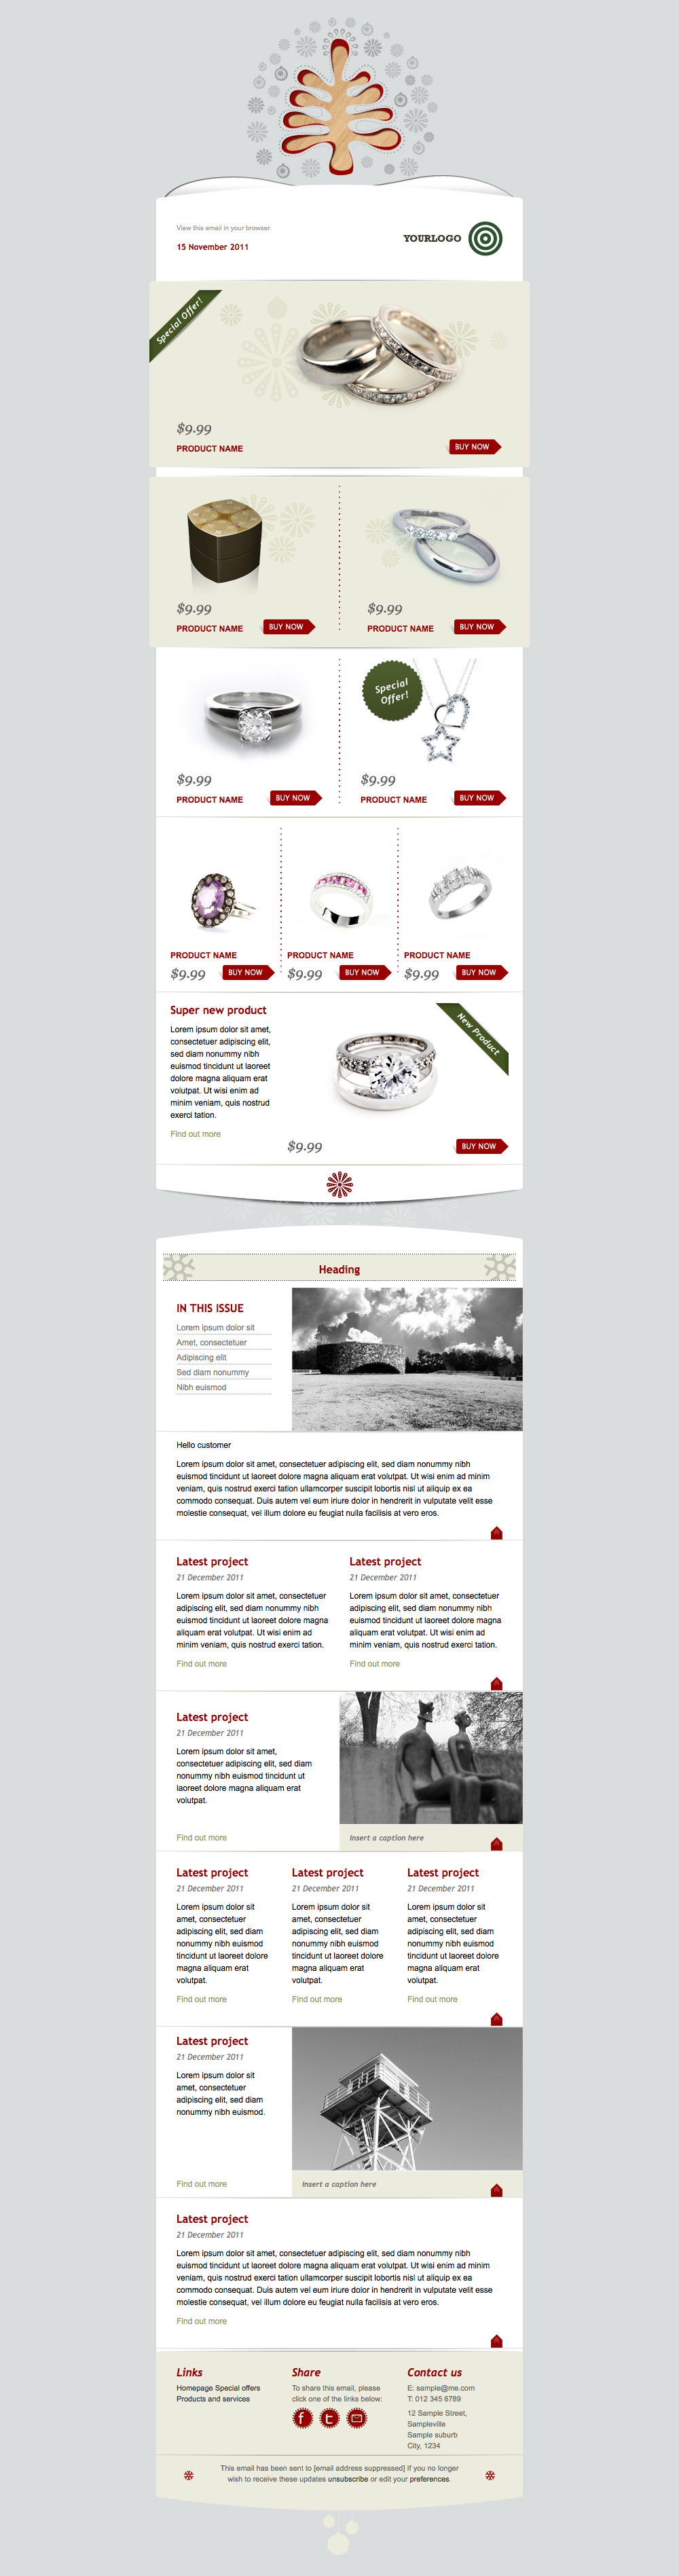 Simply Christmas 2 - Full silver template with all modules showing.